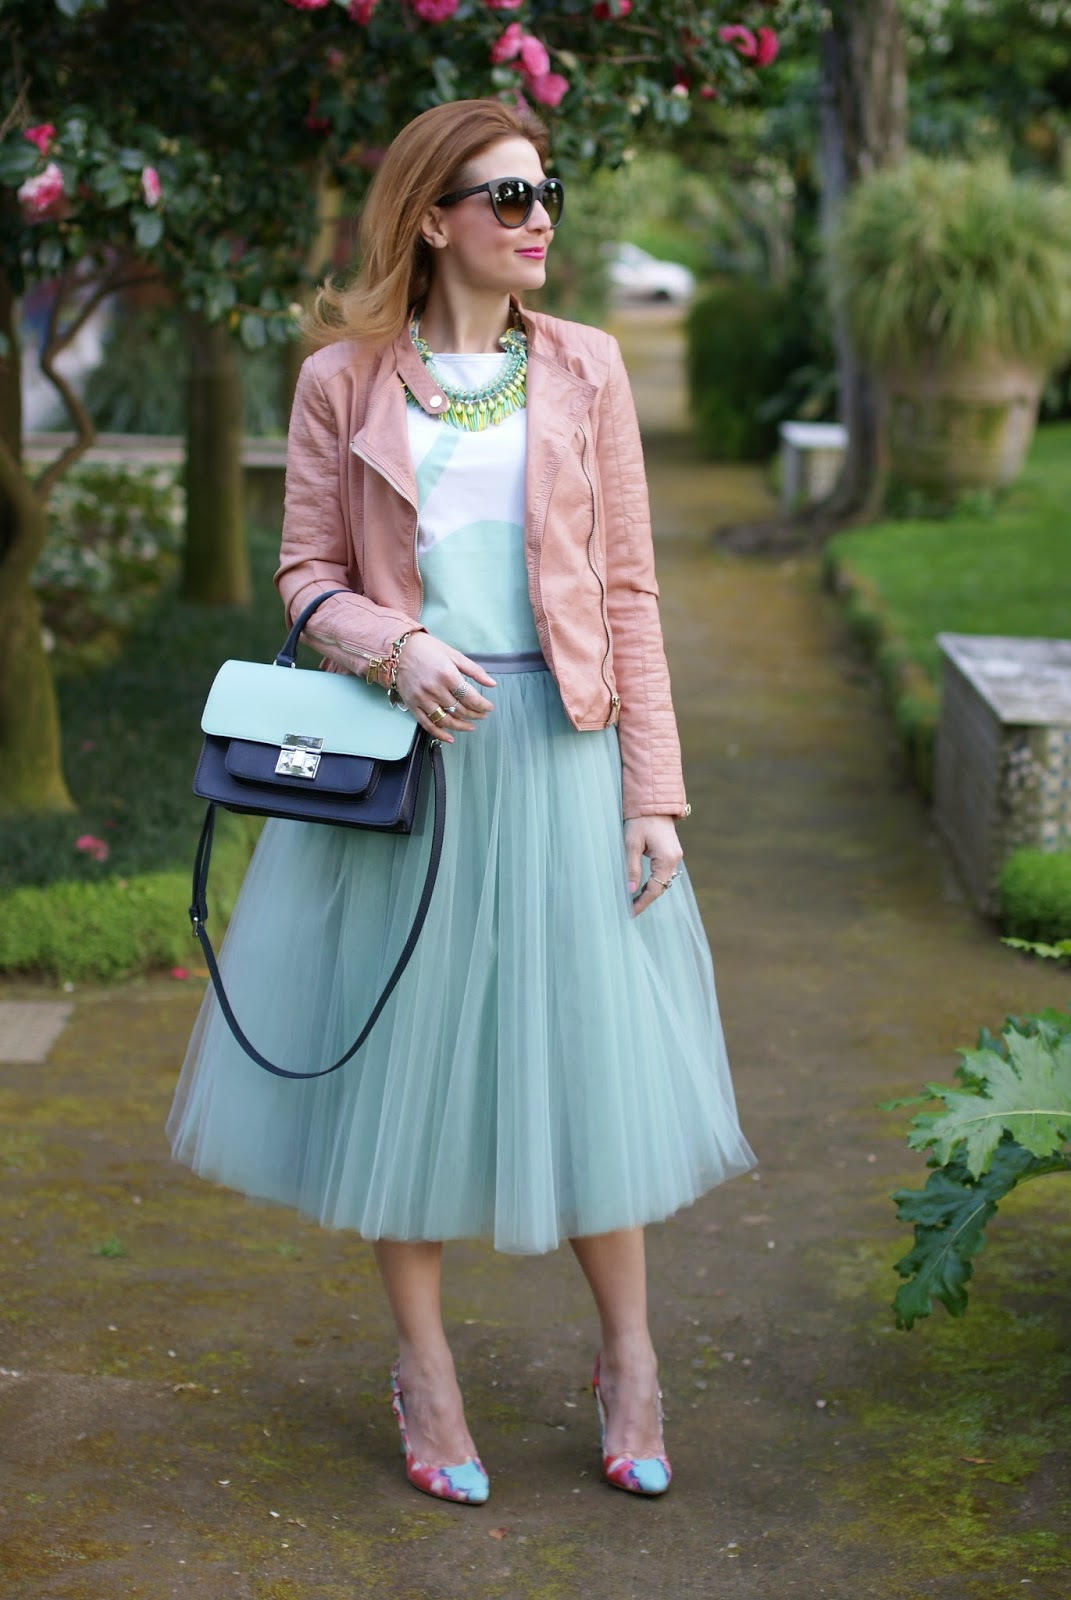 veil skirt, tulle skirt, mint tulle skirt, Miu Miu lookalike bag, Icone shoes, Rose a Pois, Fashion and Cookies, fashion blogger